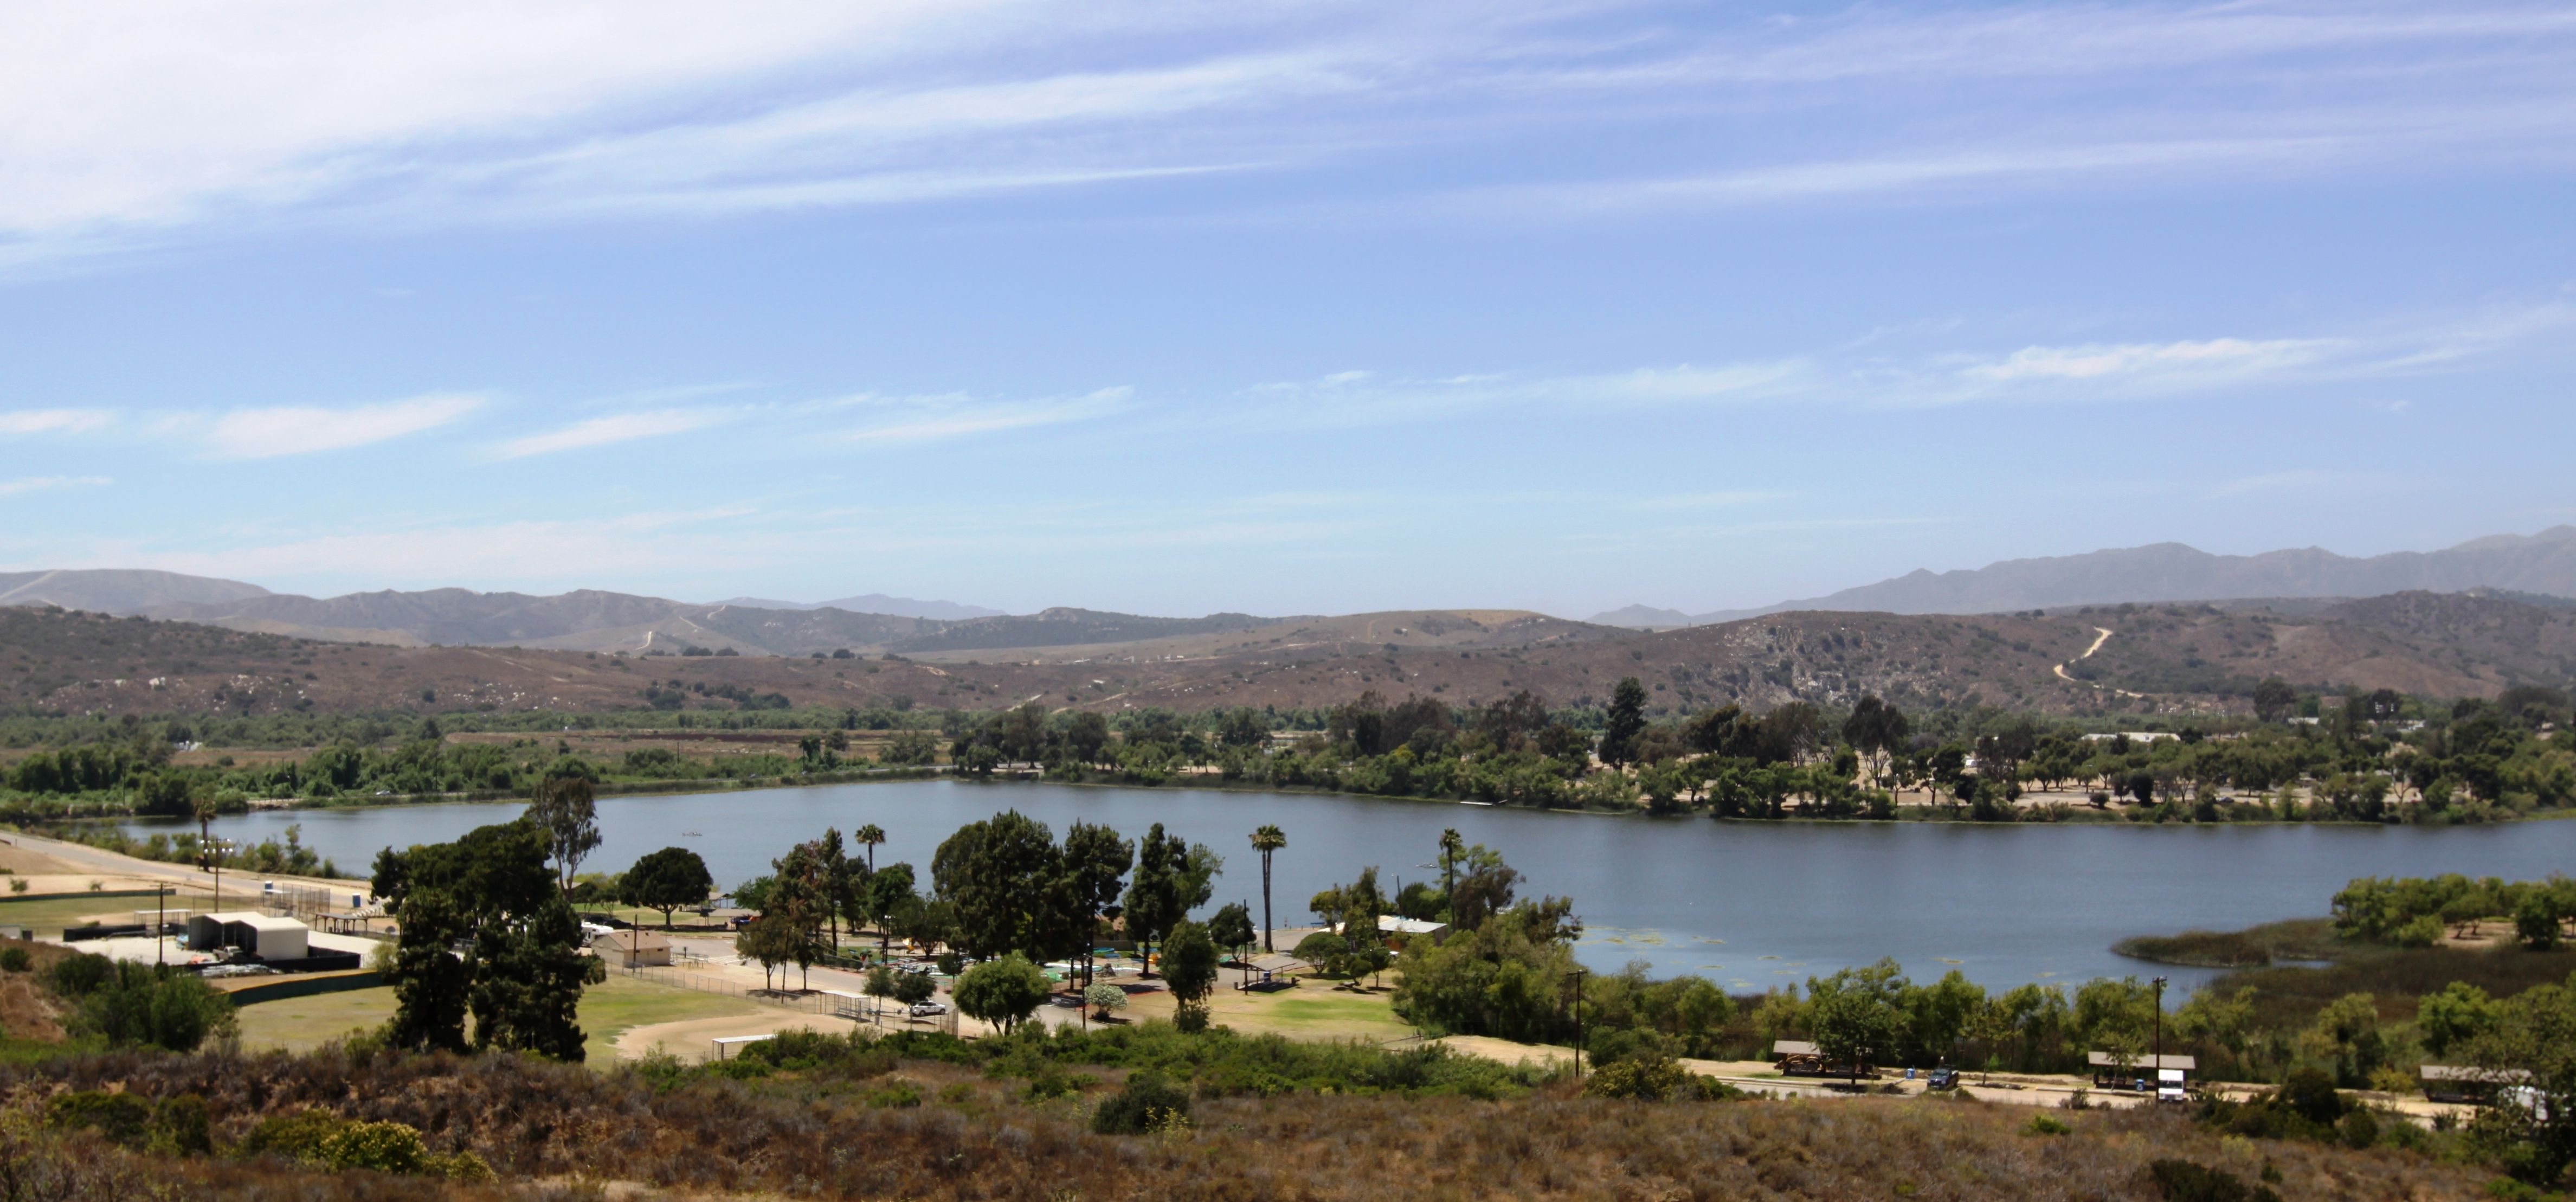 File:Camp Pendleton's Lake O'Neill.JPG - Wikimedia Commons